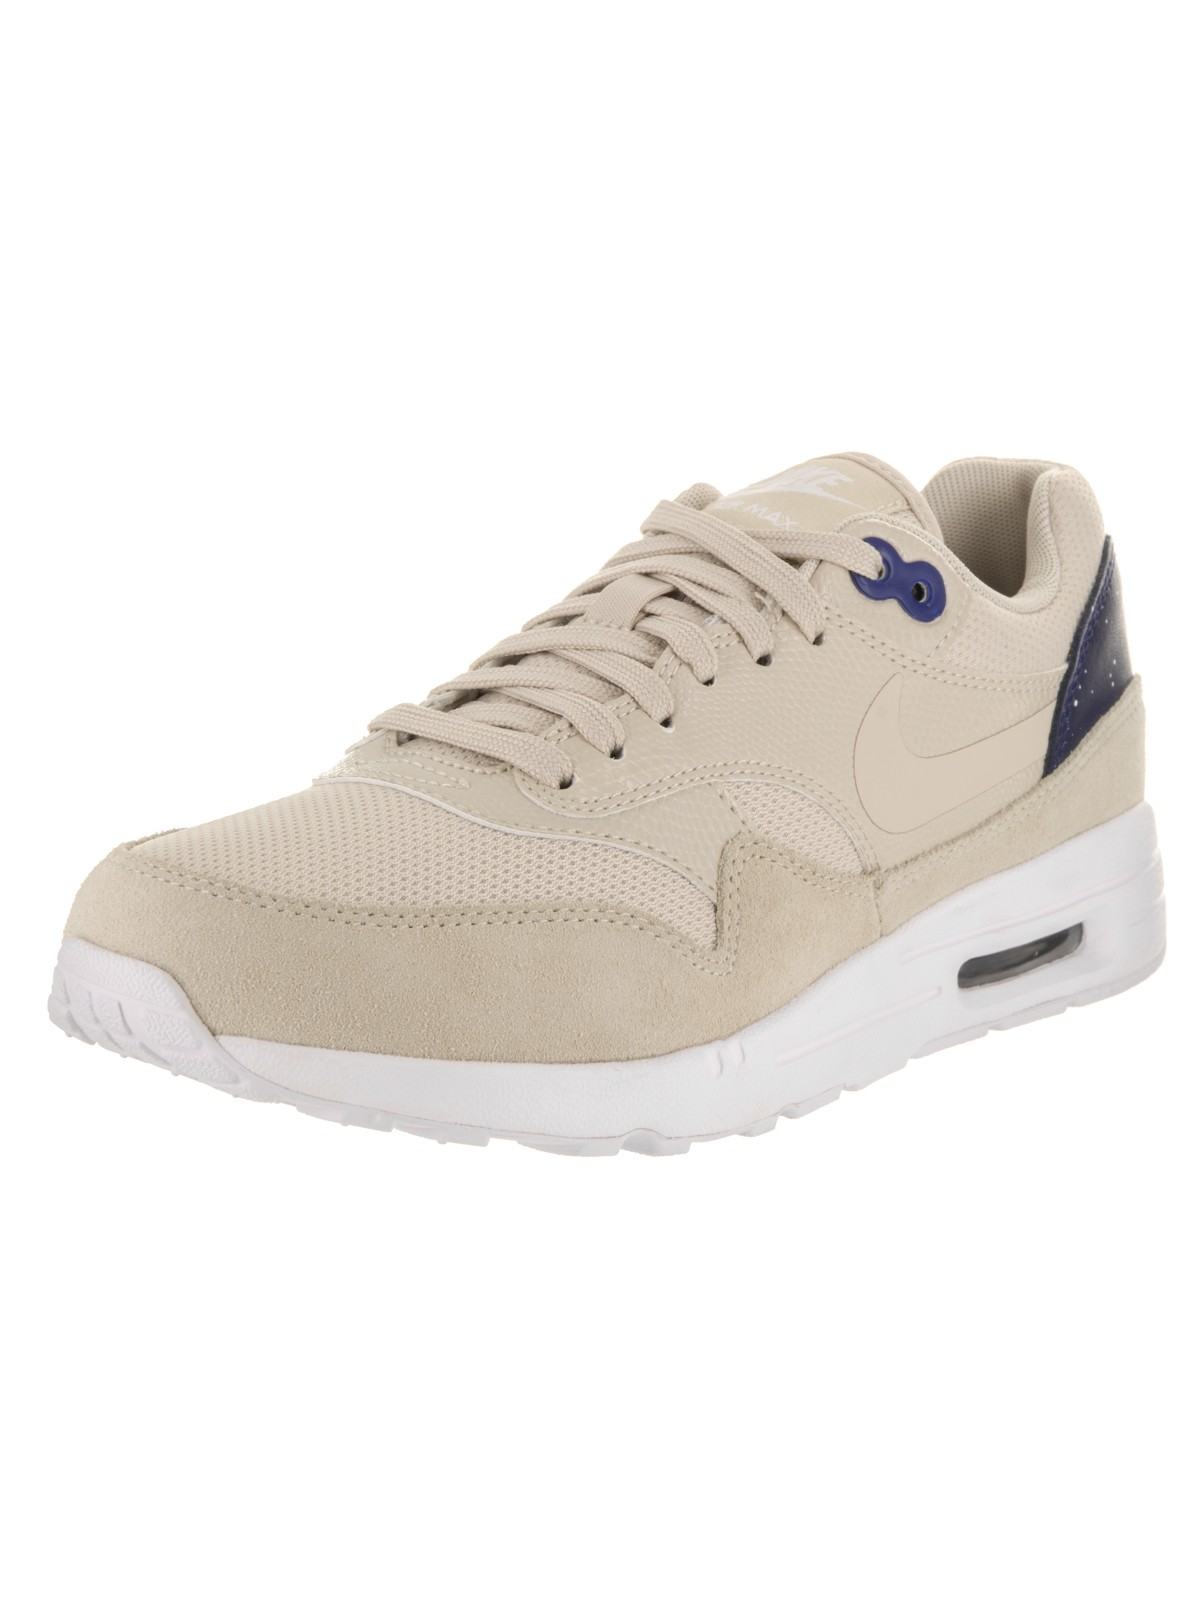 Nike Women's Air Max 1 Ultra 2.0 Running Shoe